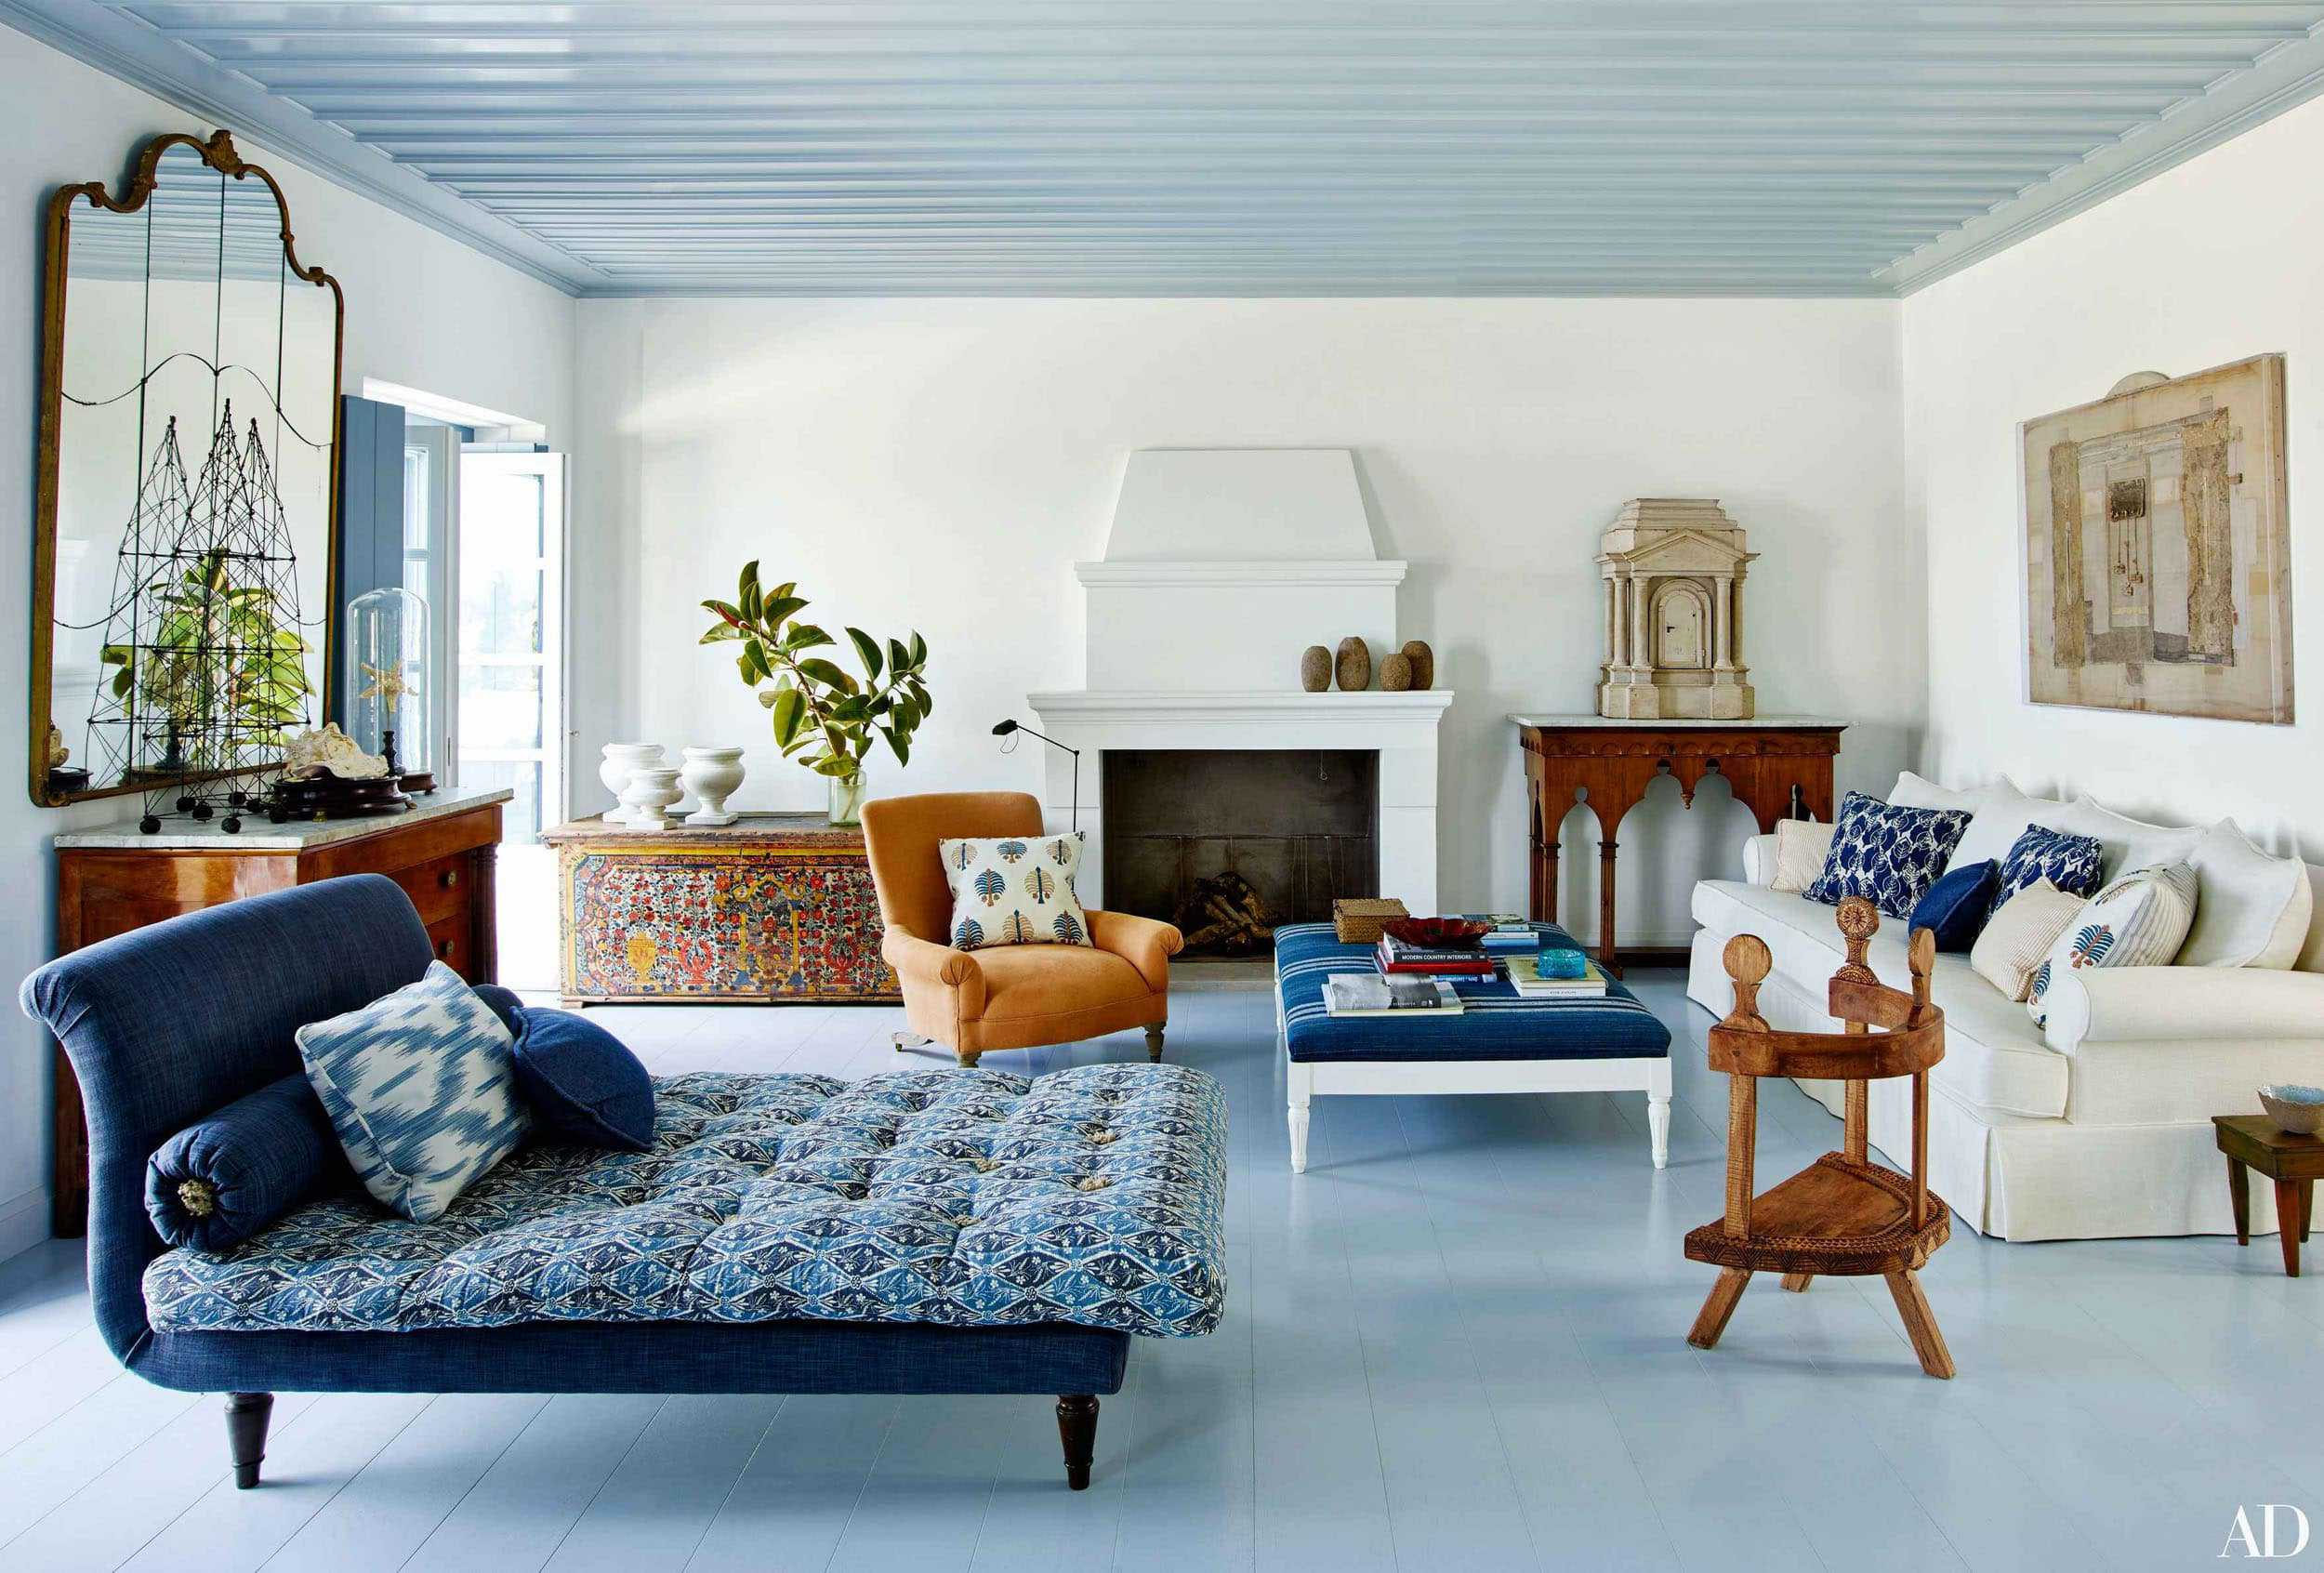 Trend Alert Is The Accent Ceiling The New Accent Wall 5 Easy And Budget Friendly Ways To Take Your Room To The Next Level Emily Henderson